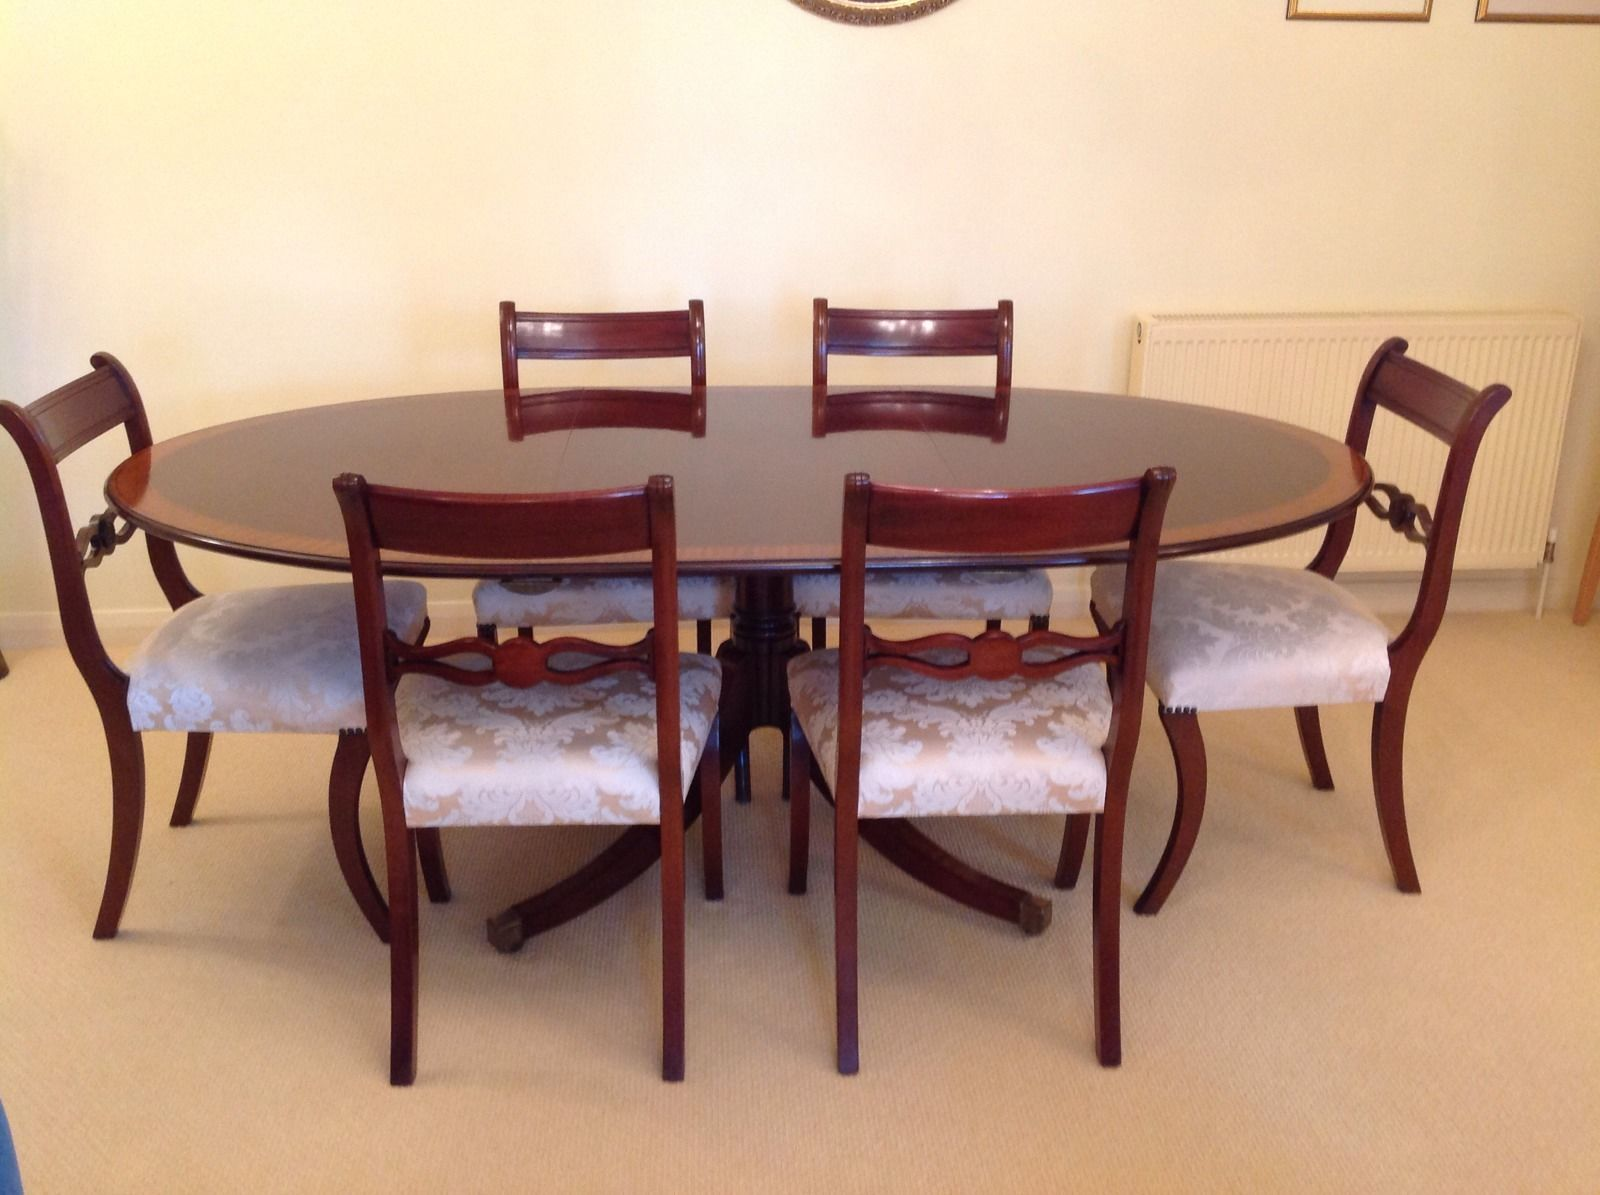 Charmant Brights Of Nettlebed Dining Table And Six Chairs. Excellent Condition. In  Home, Furniture U0026 DIY, Furniture, Table U0026 Chair Sets | EBay